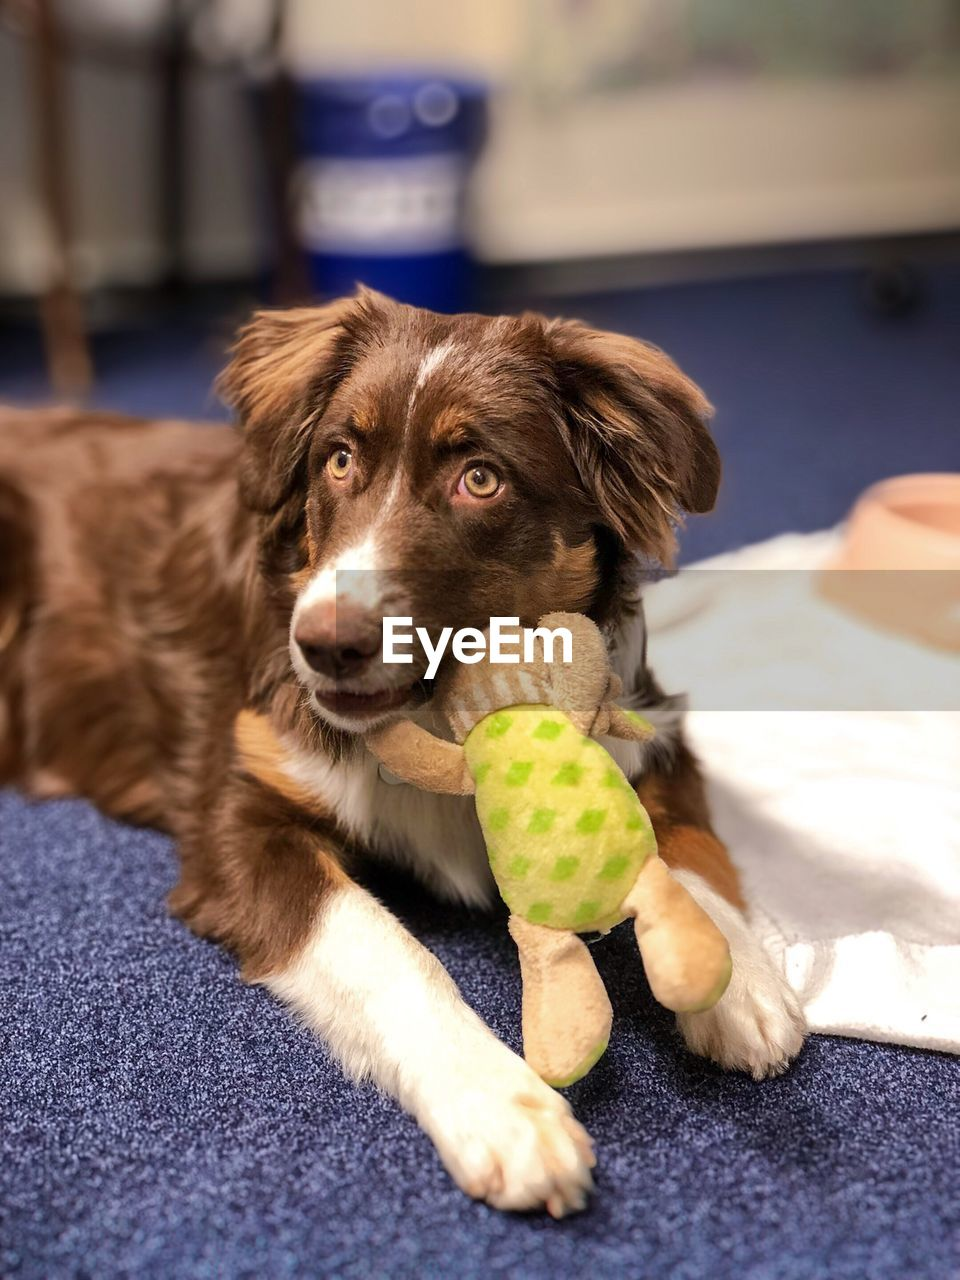 canine, dog, pets, domestic animals, mammal, ball, domestic, animal themes, animal, one animal, tennis, sport, looking at camera, tennis ball, portrait, no people, vertebrate, toy, focus on foreground, indoors